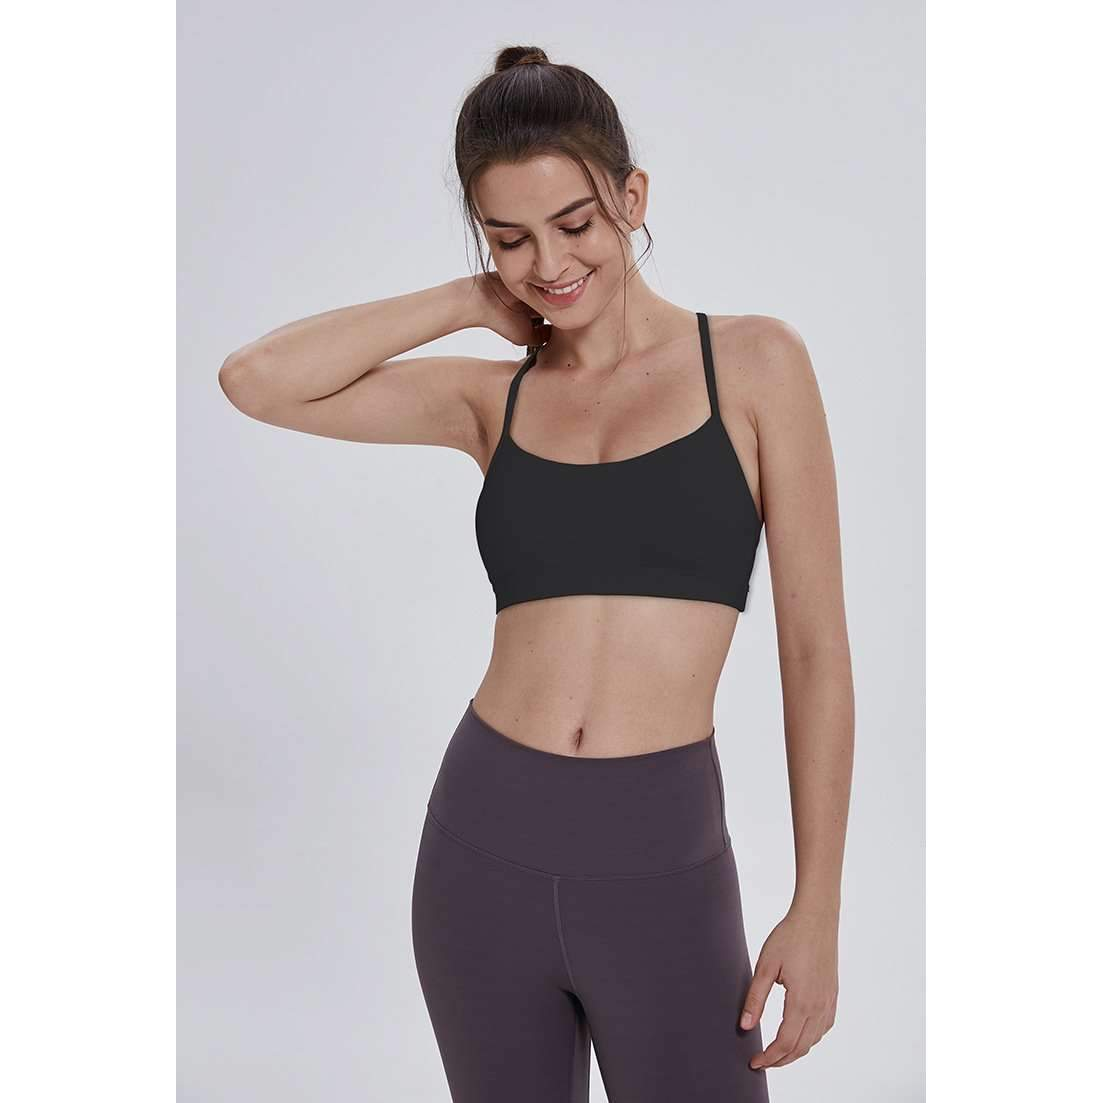 MEND Y-Strap Sports Bra - Black